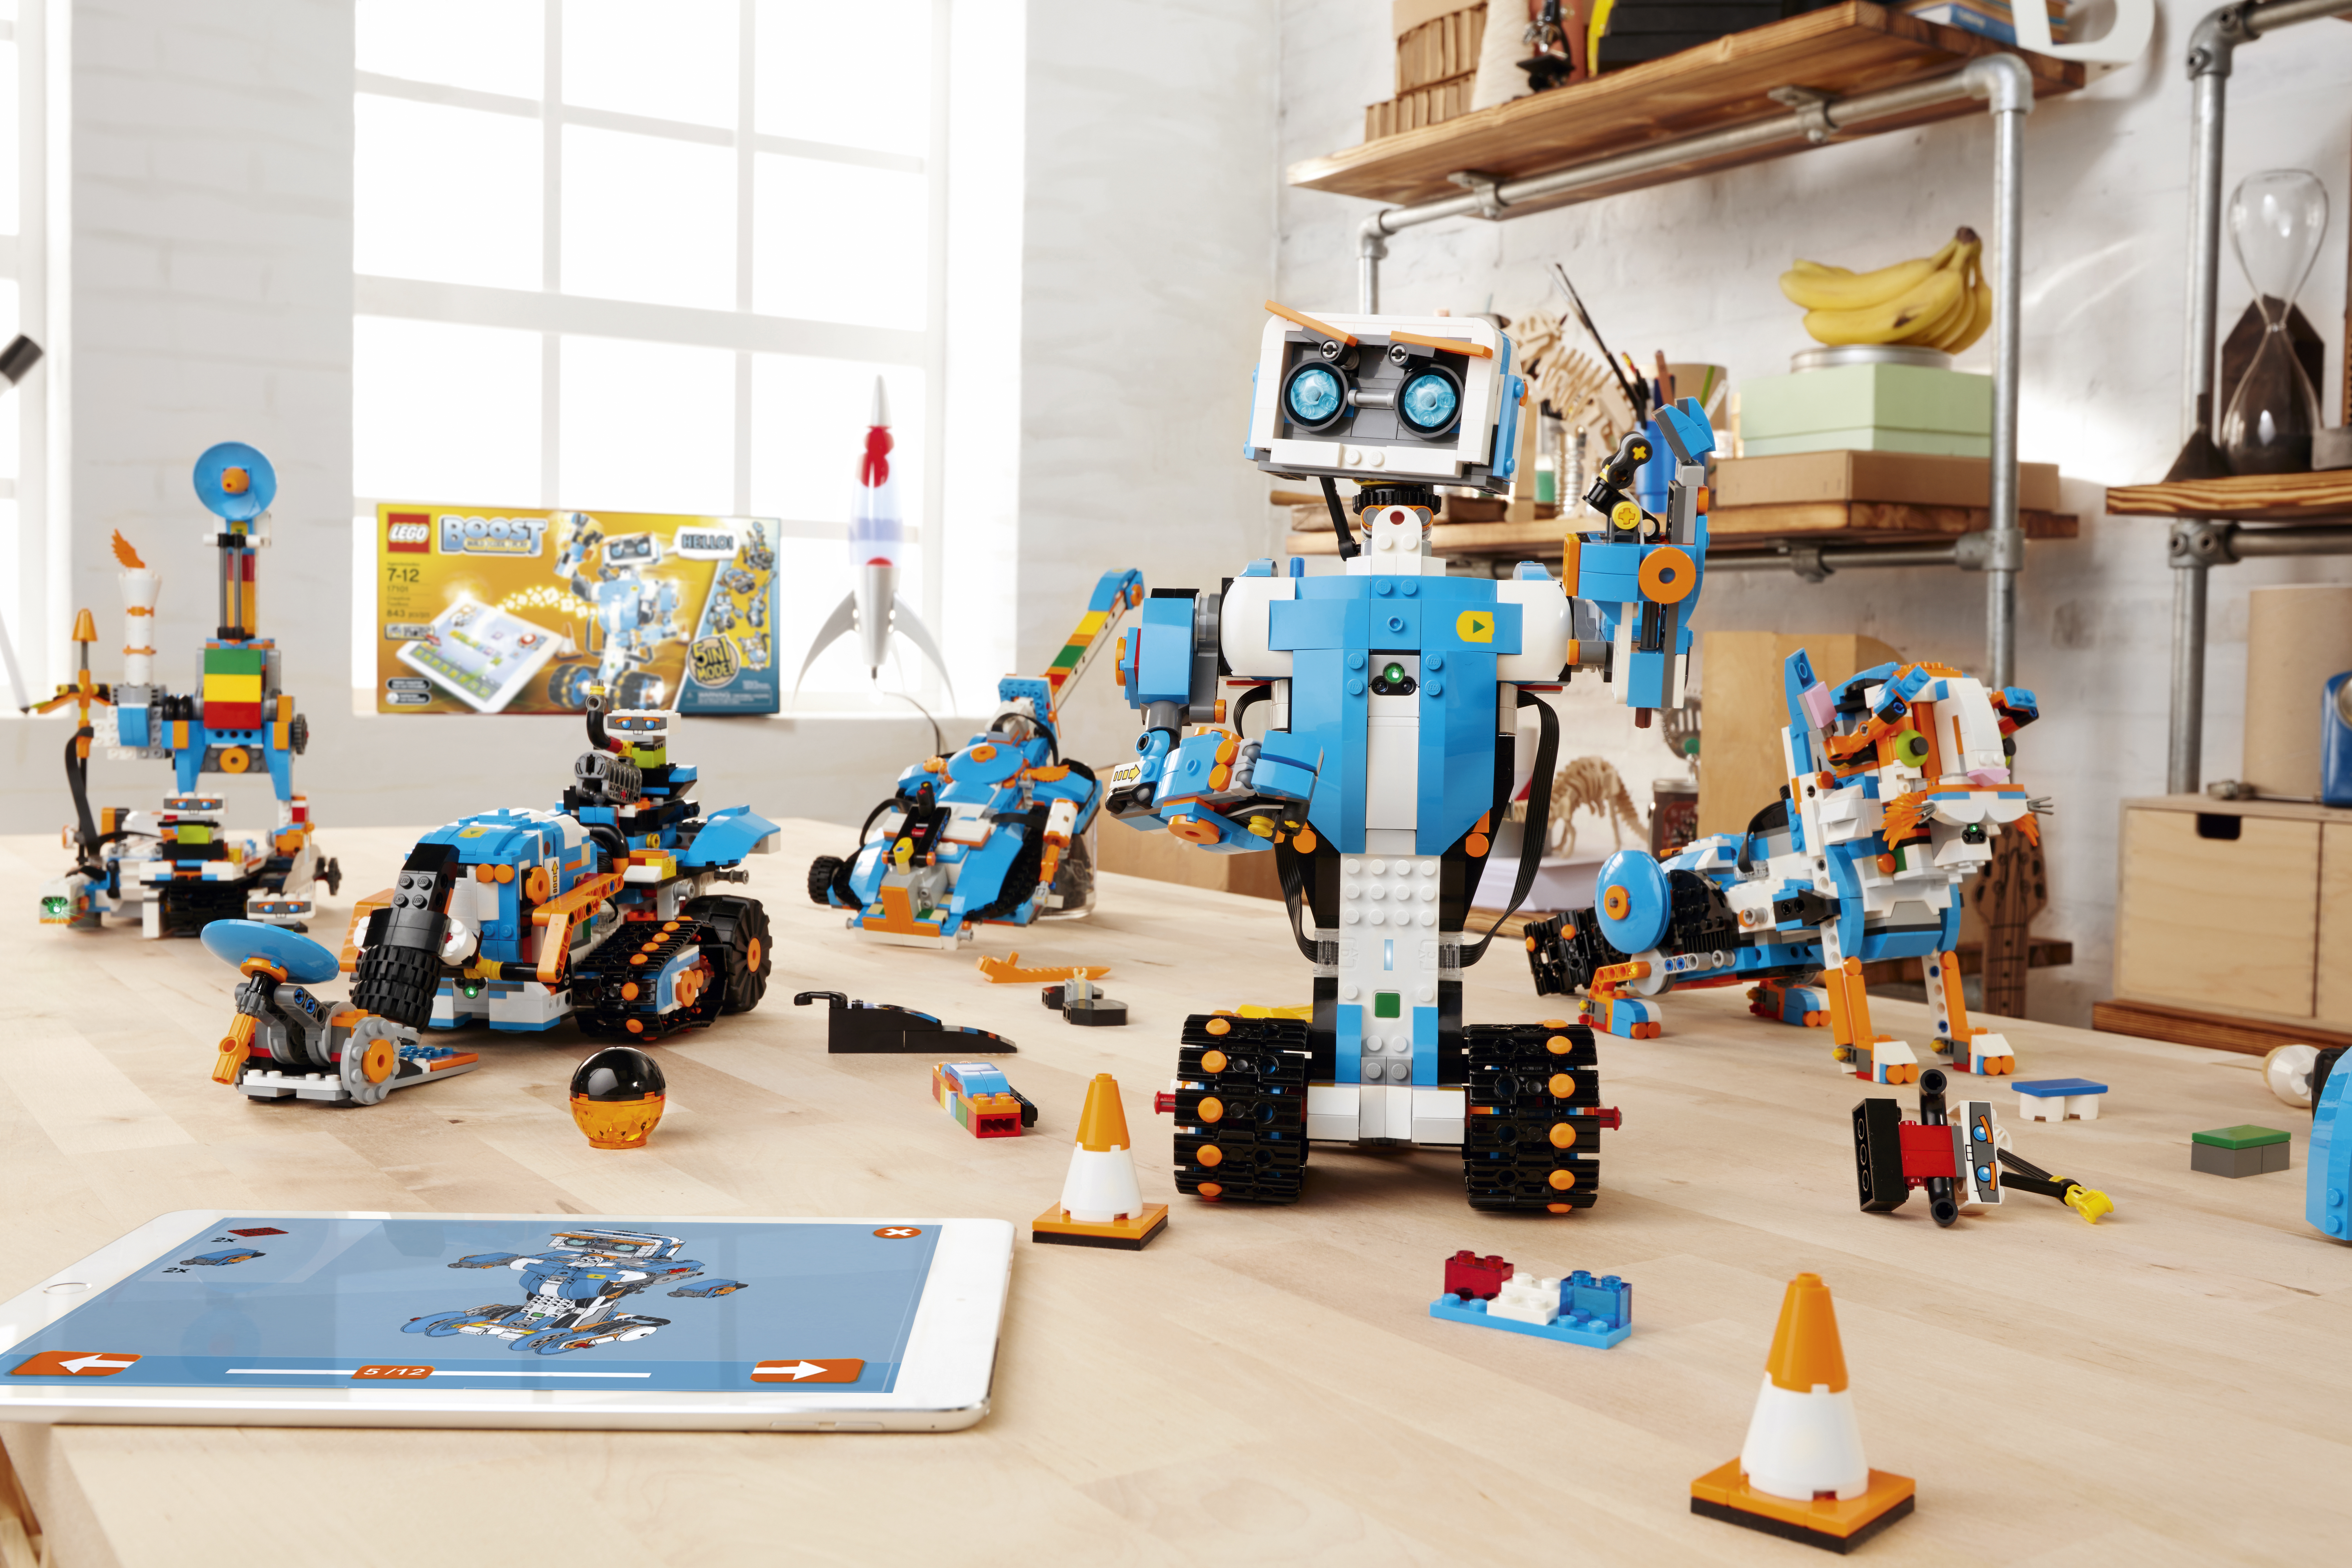 Lego debuts Lego Boost, a building and coding set, at the Consumer Electronics Show in Las Vegas.